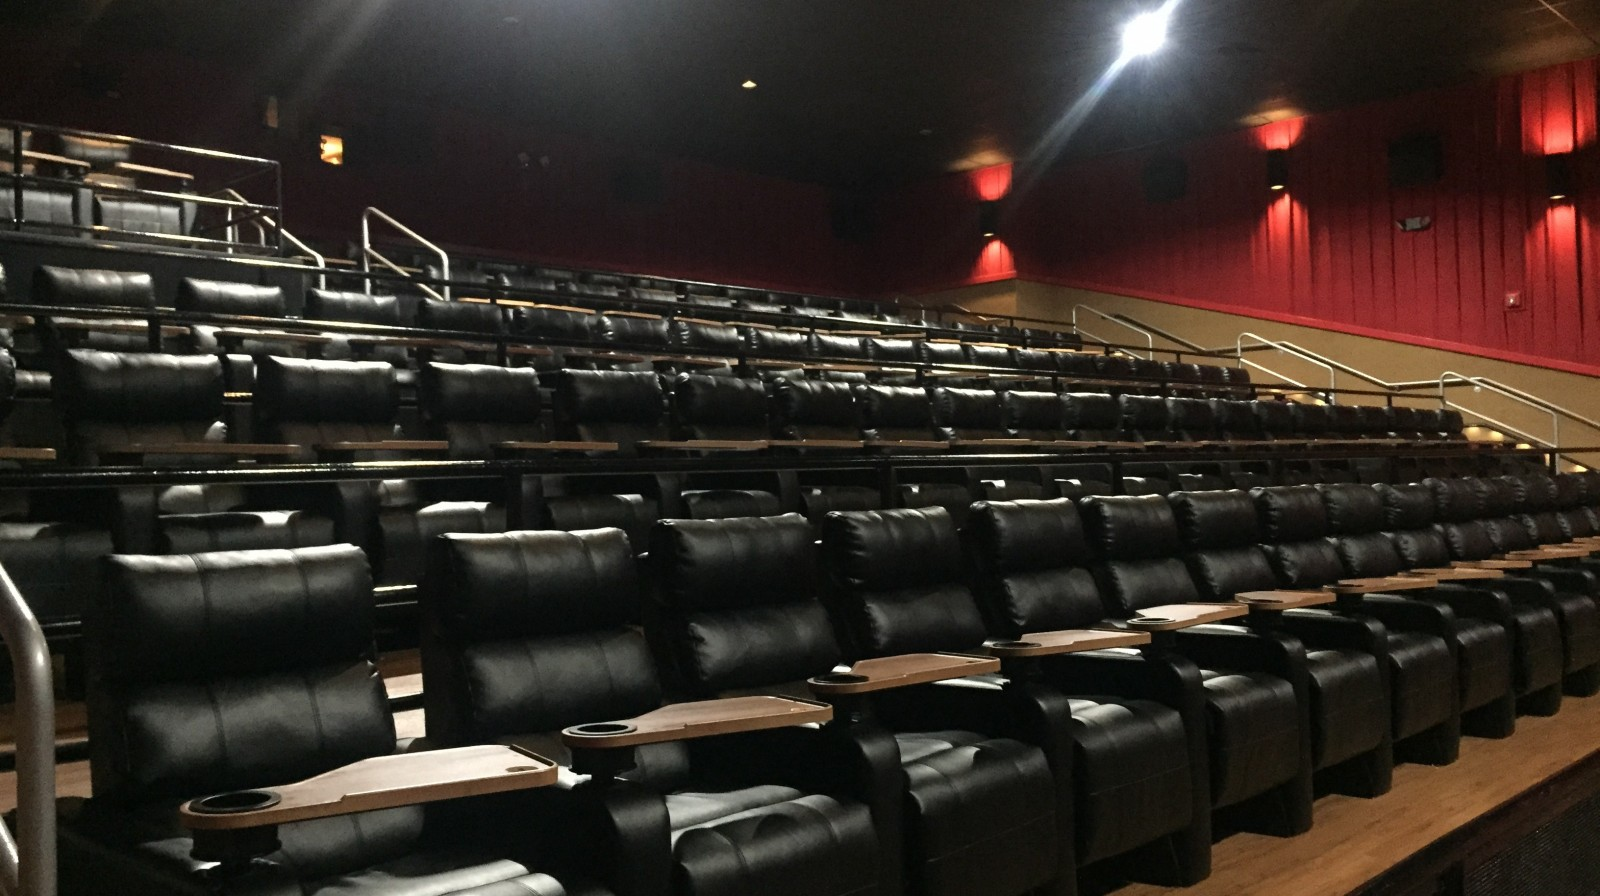 Regal Hamburg Recliners Are Coming To The Quaker Regal The Buffalo News